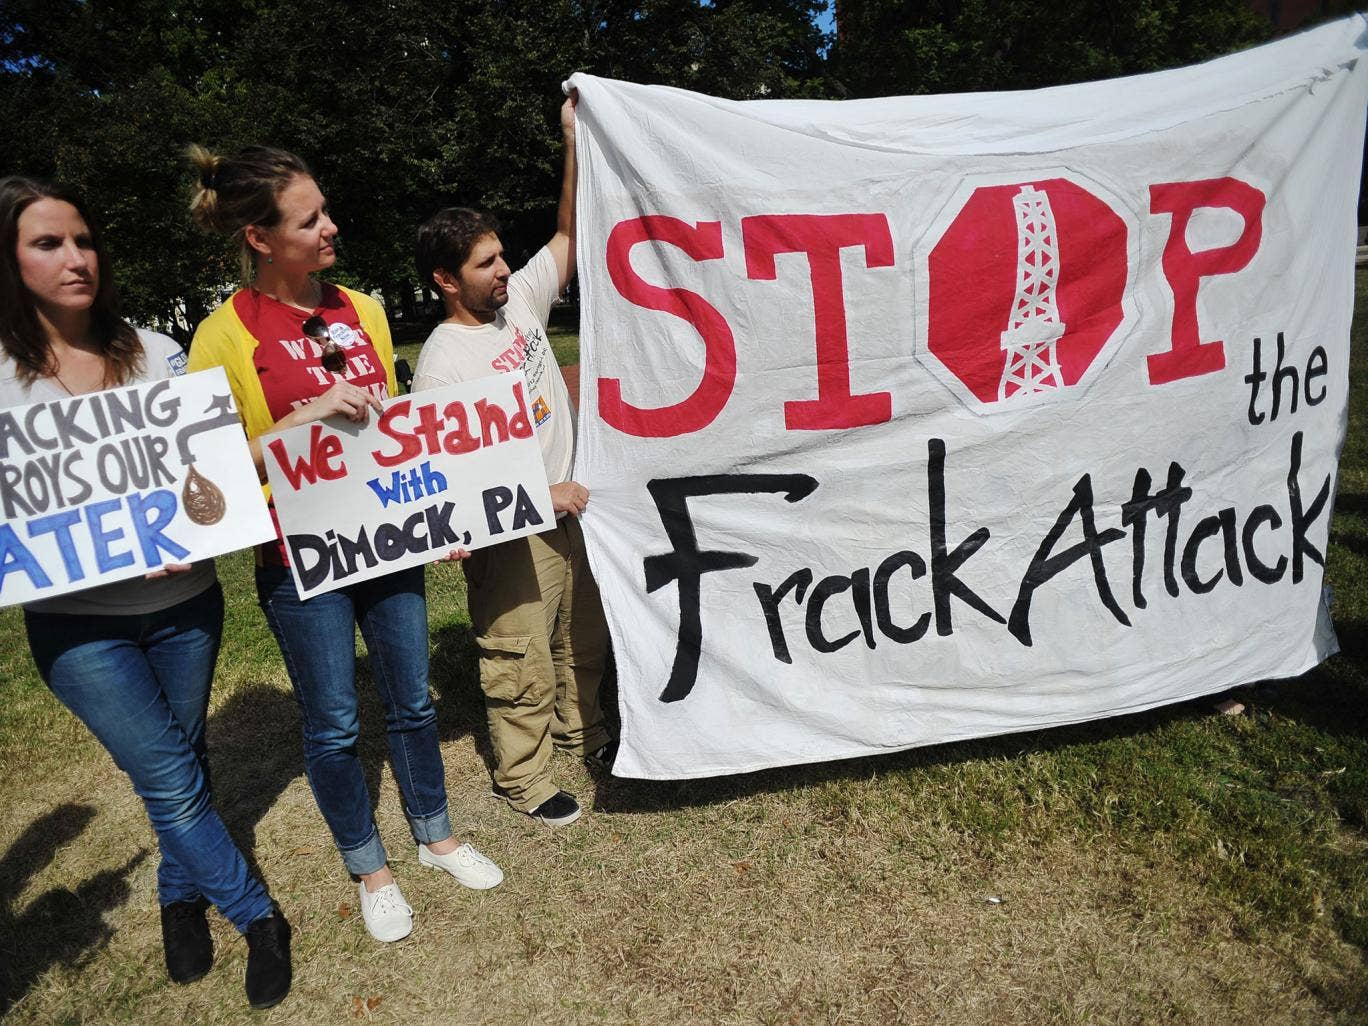 Opponents of hydraulic fracturing or 'fracking' hold placards during a rally in Lafayette Square, across from the White House in DC